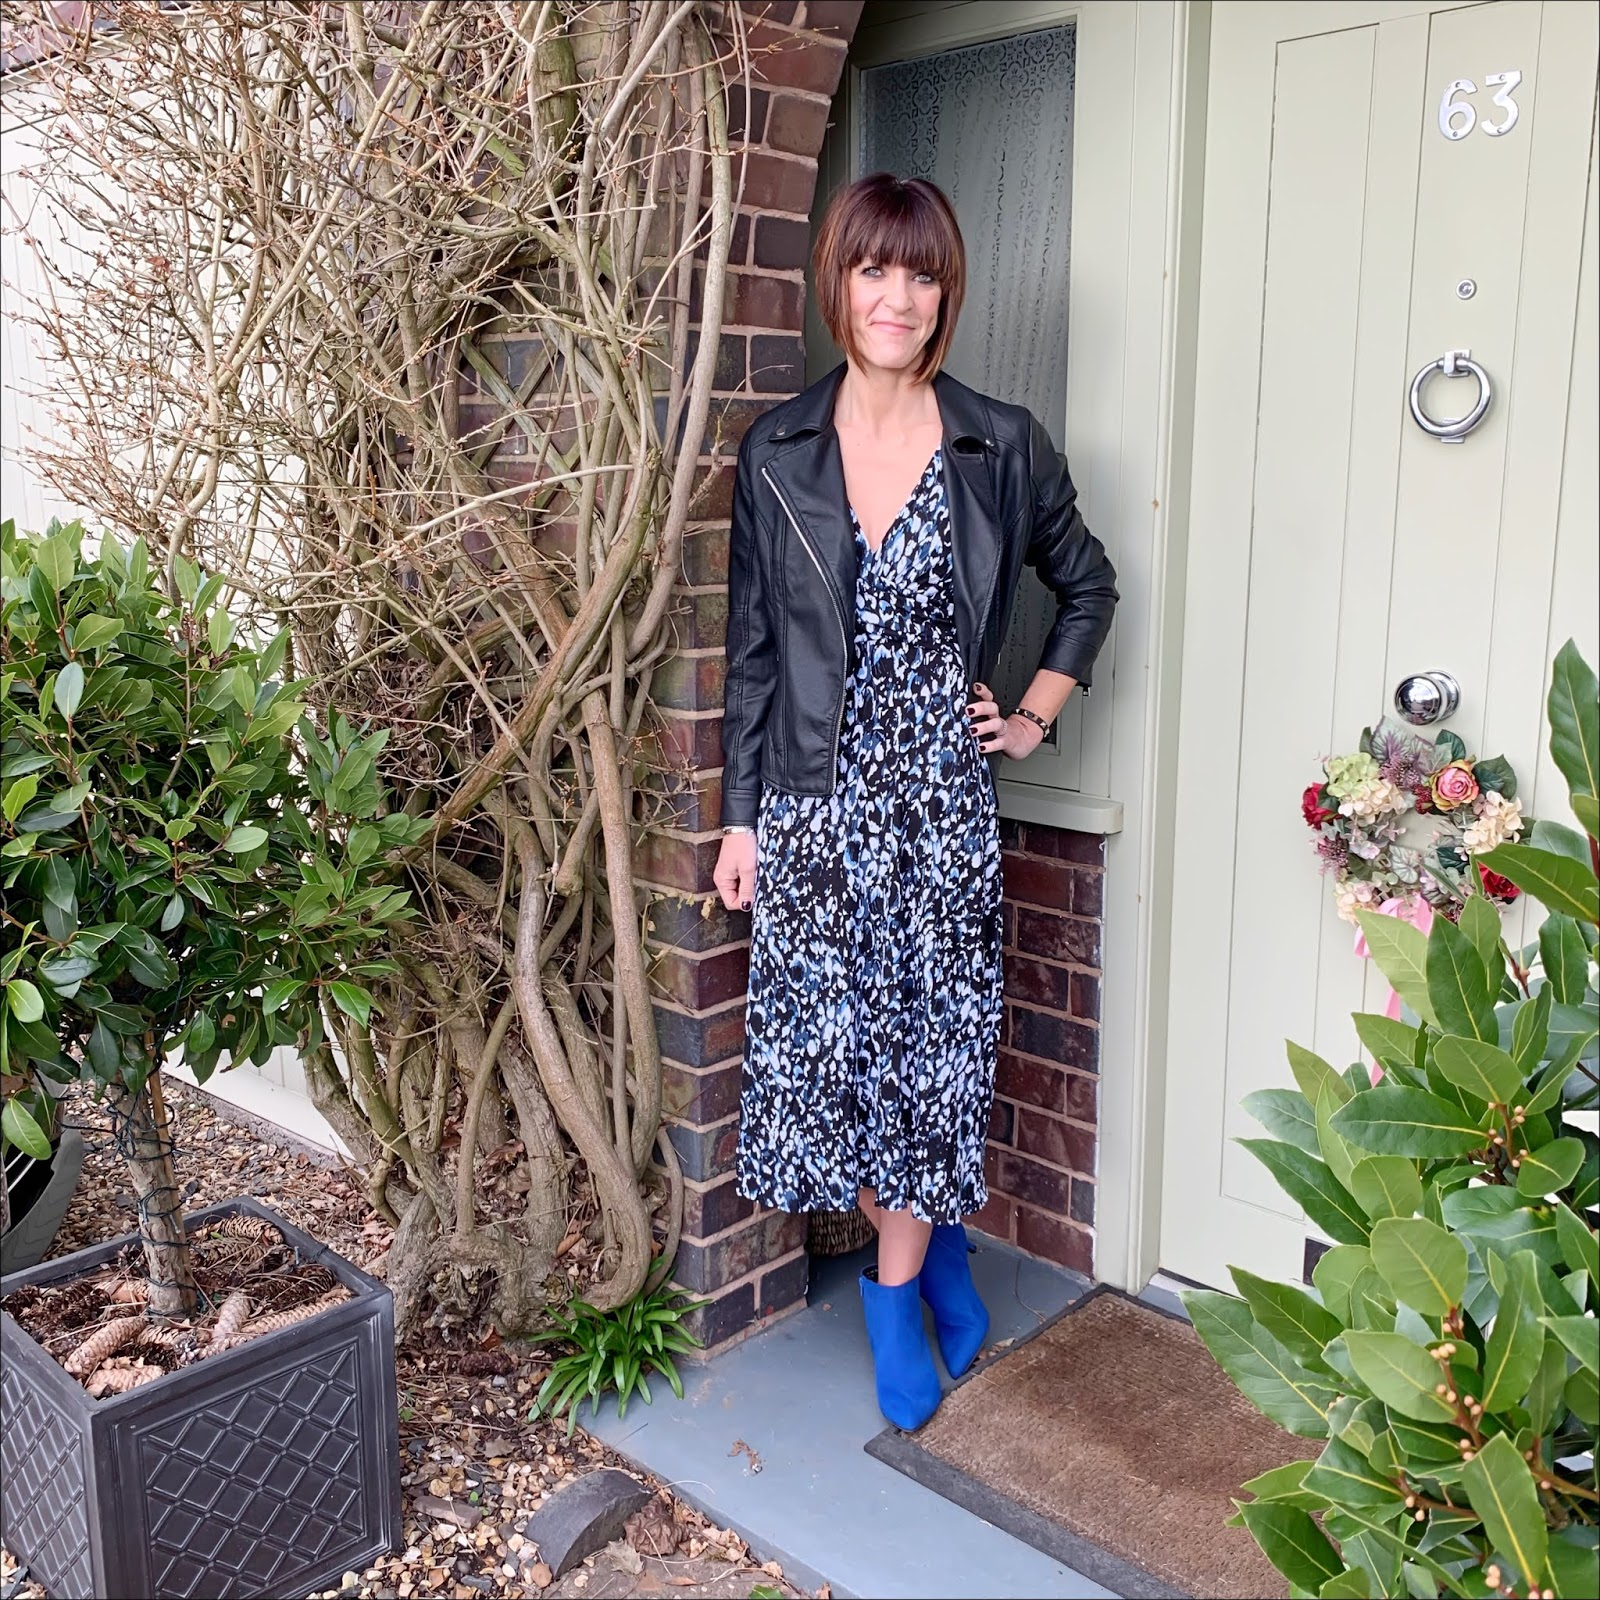 my midlife fashion, jd williams, jd williams black faux leather biker jacket, jd williams blue/black leopard print wrap dress, jd williams flexi sole kitten heel ankle boots